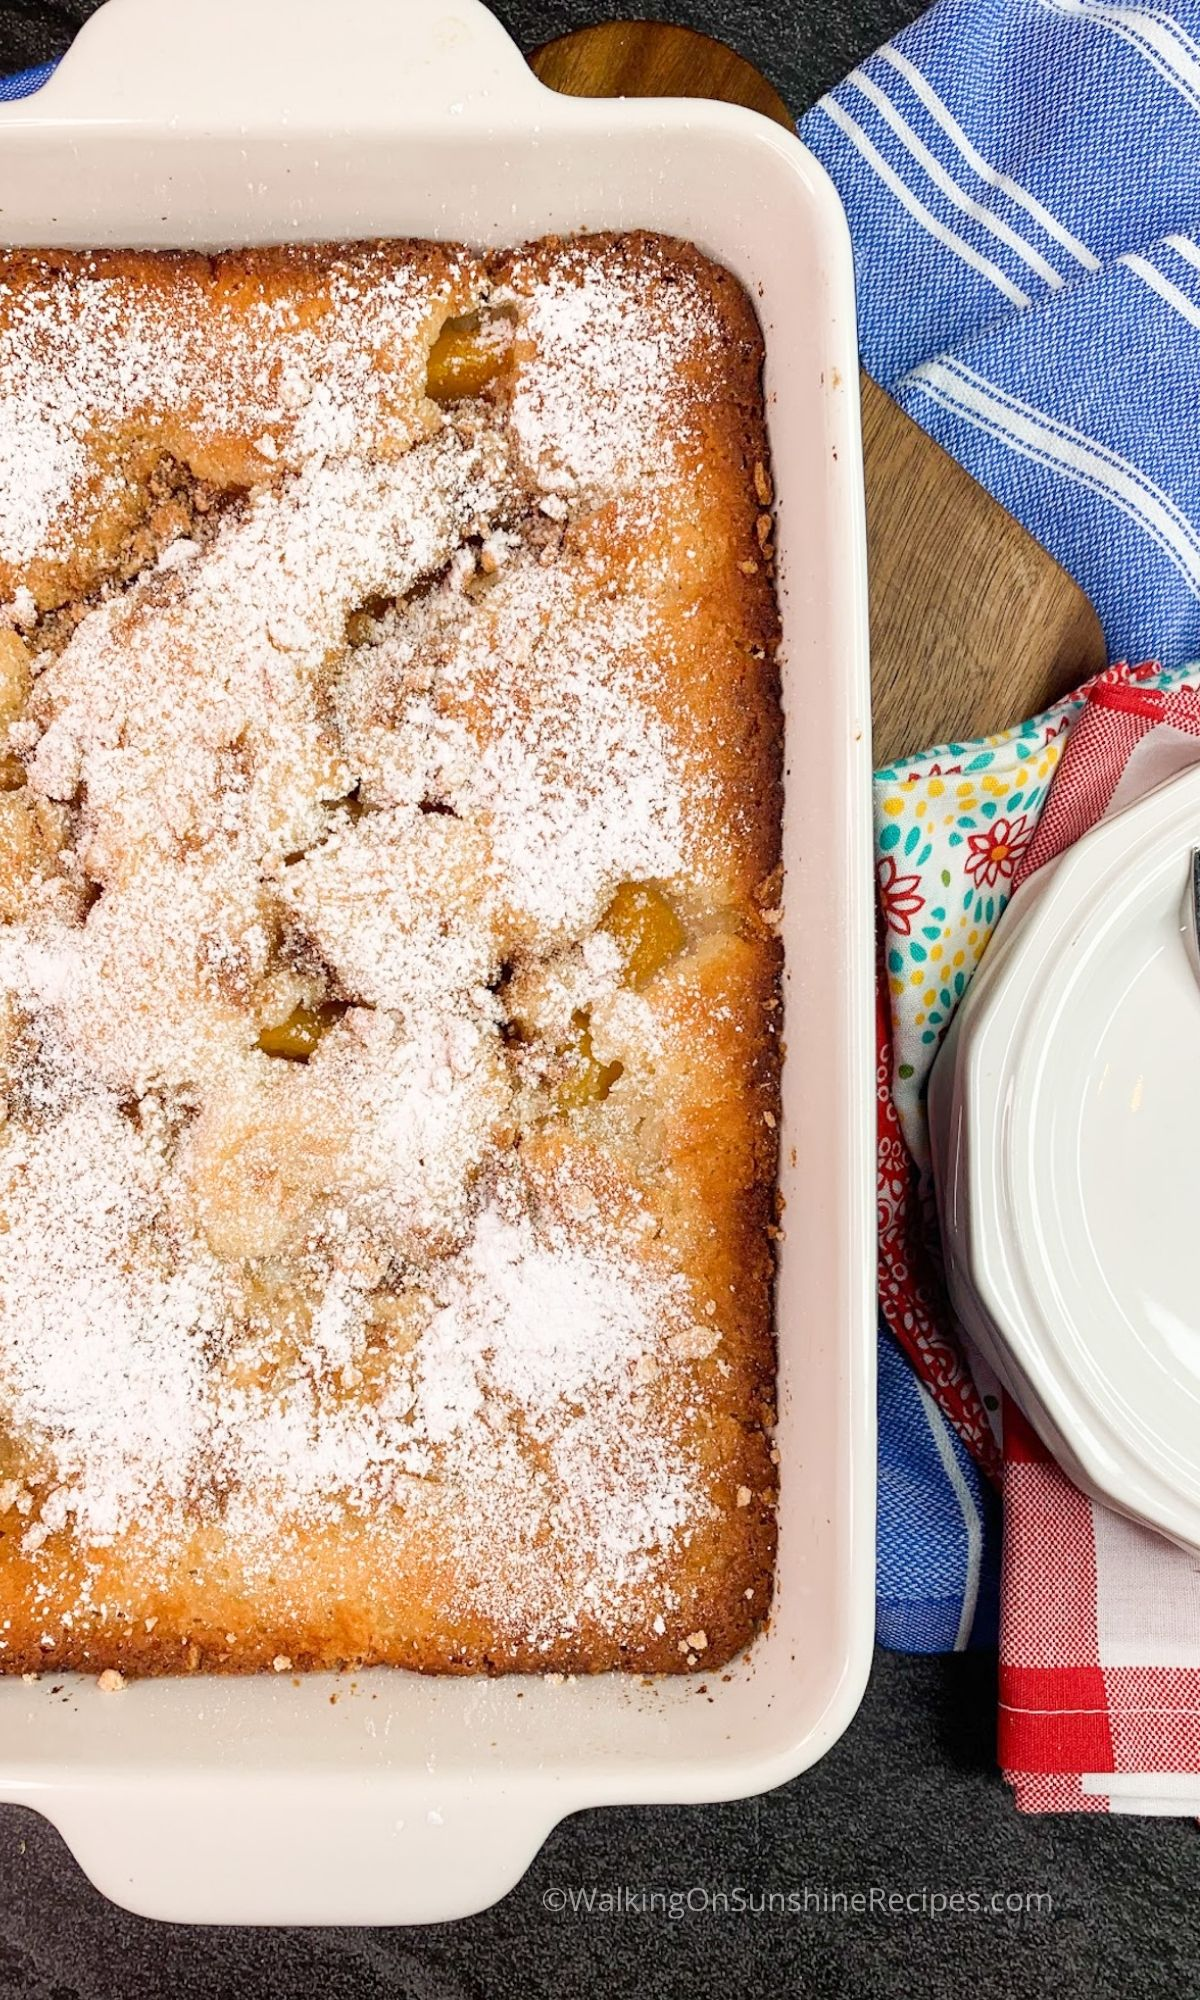 Baked Peach Cobbler with Cinnamon Toast Crunch Cereal.